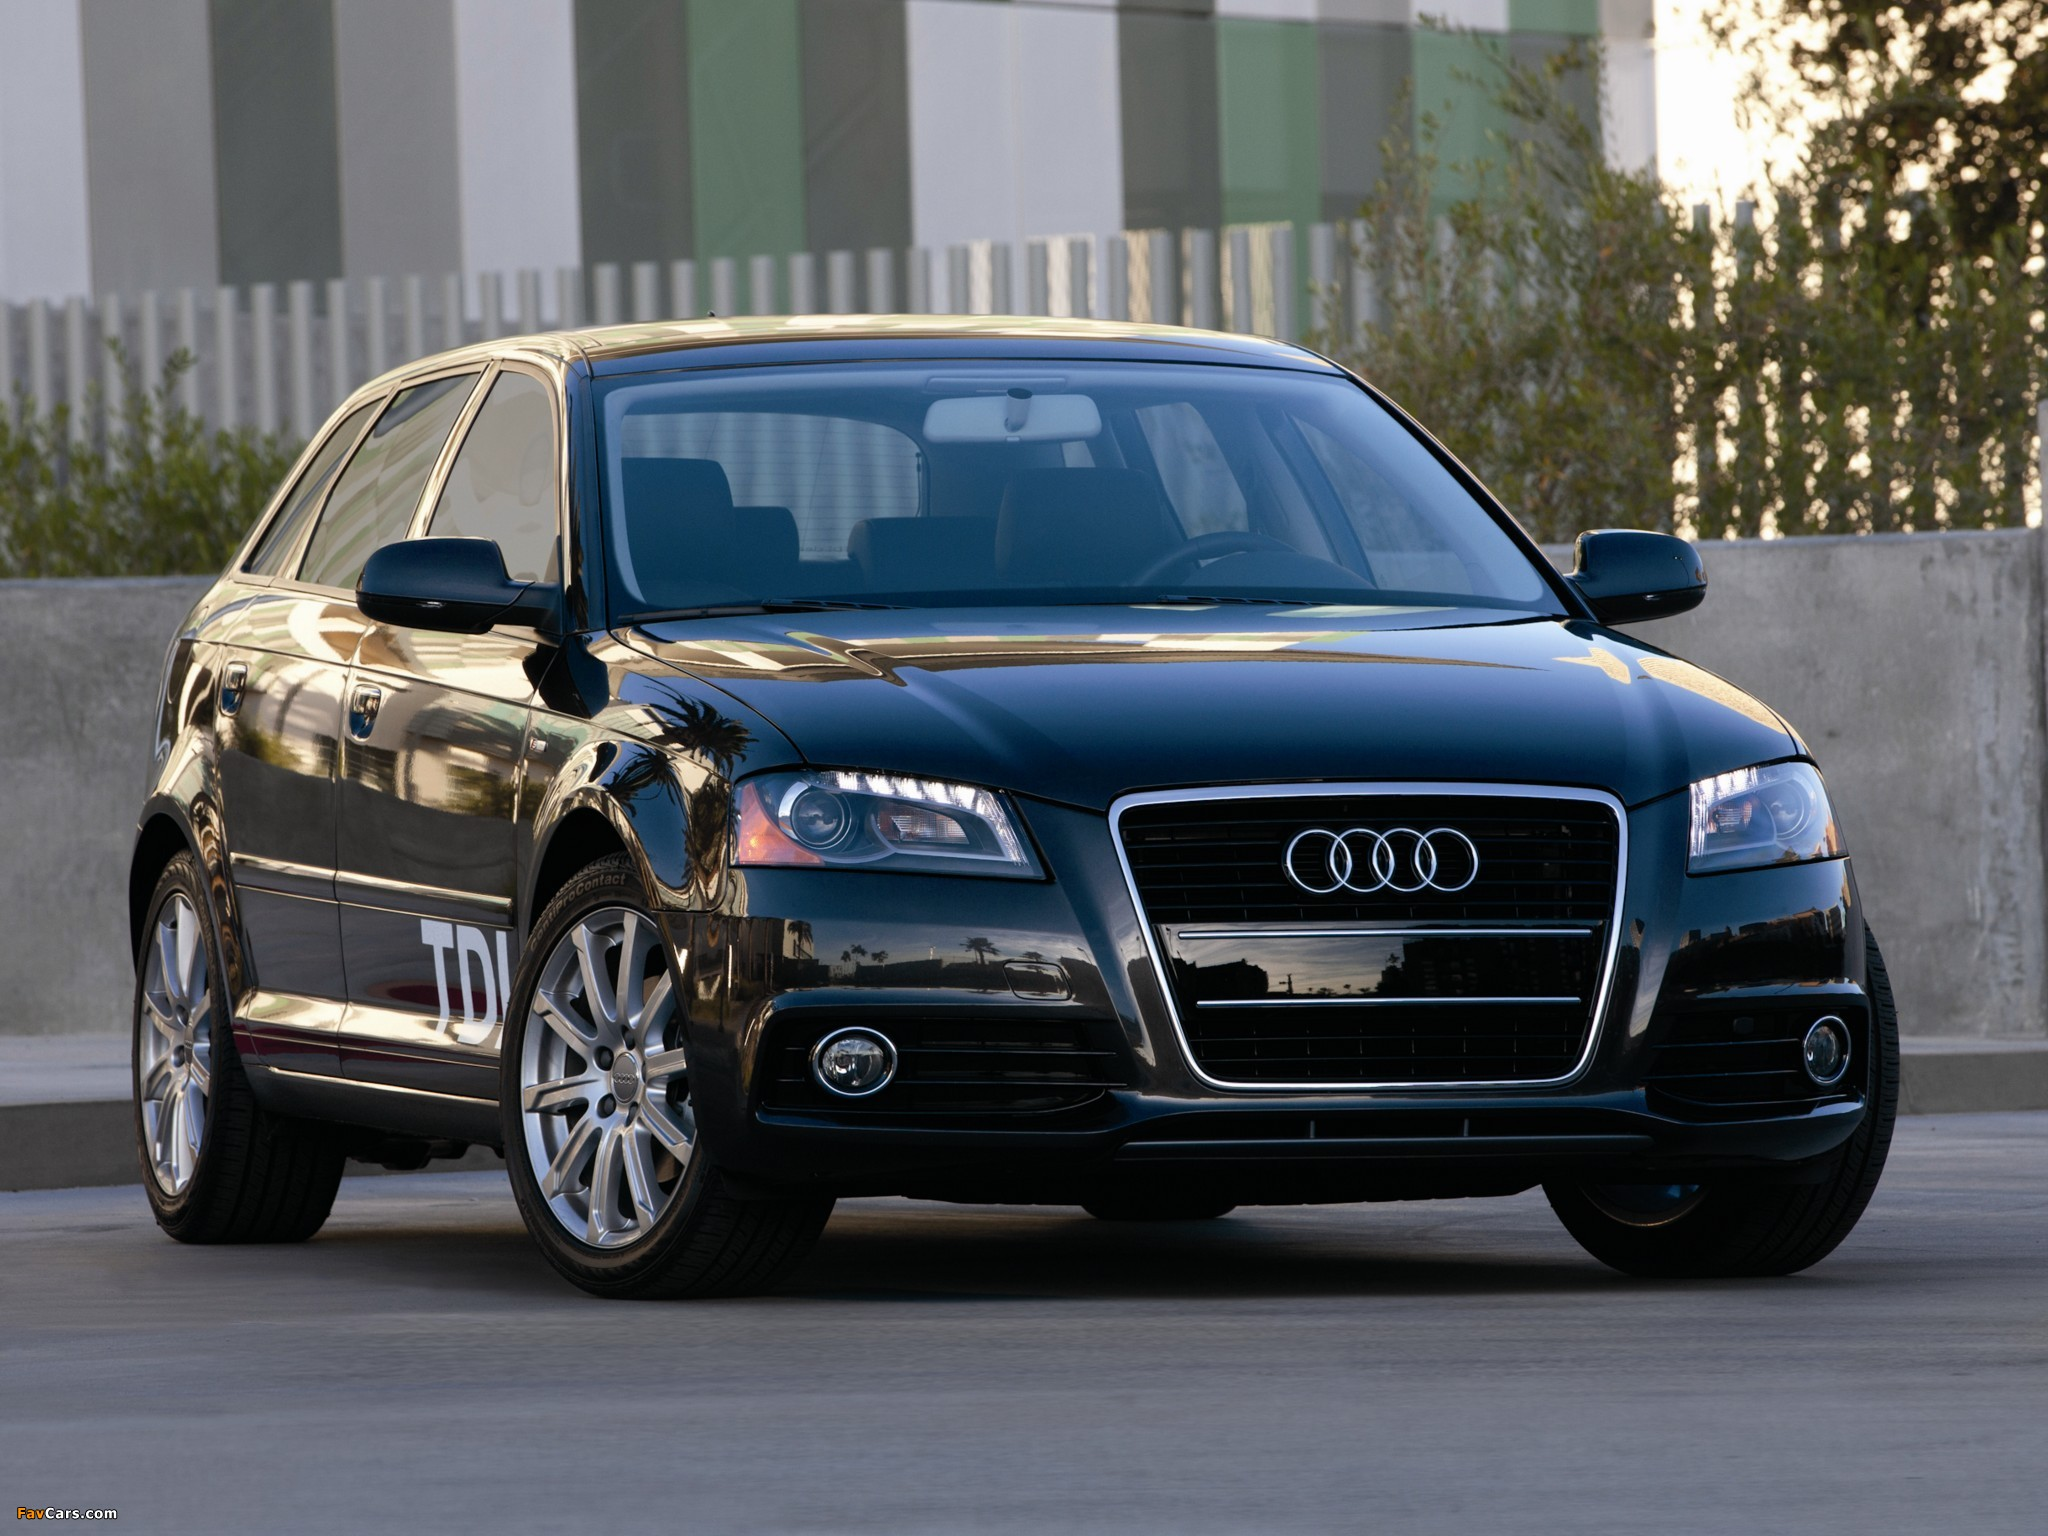 audi a3 sportback tdi clean diesel 8pa 2009 2010 wallpapers 2048x1536. Black Bedroom Furniture Sets. Home Design Ideas